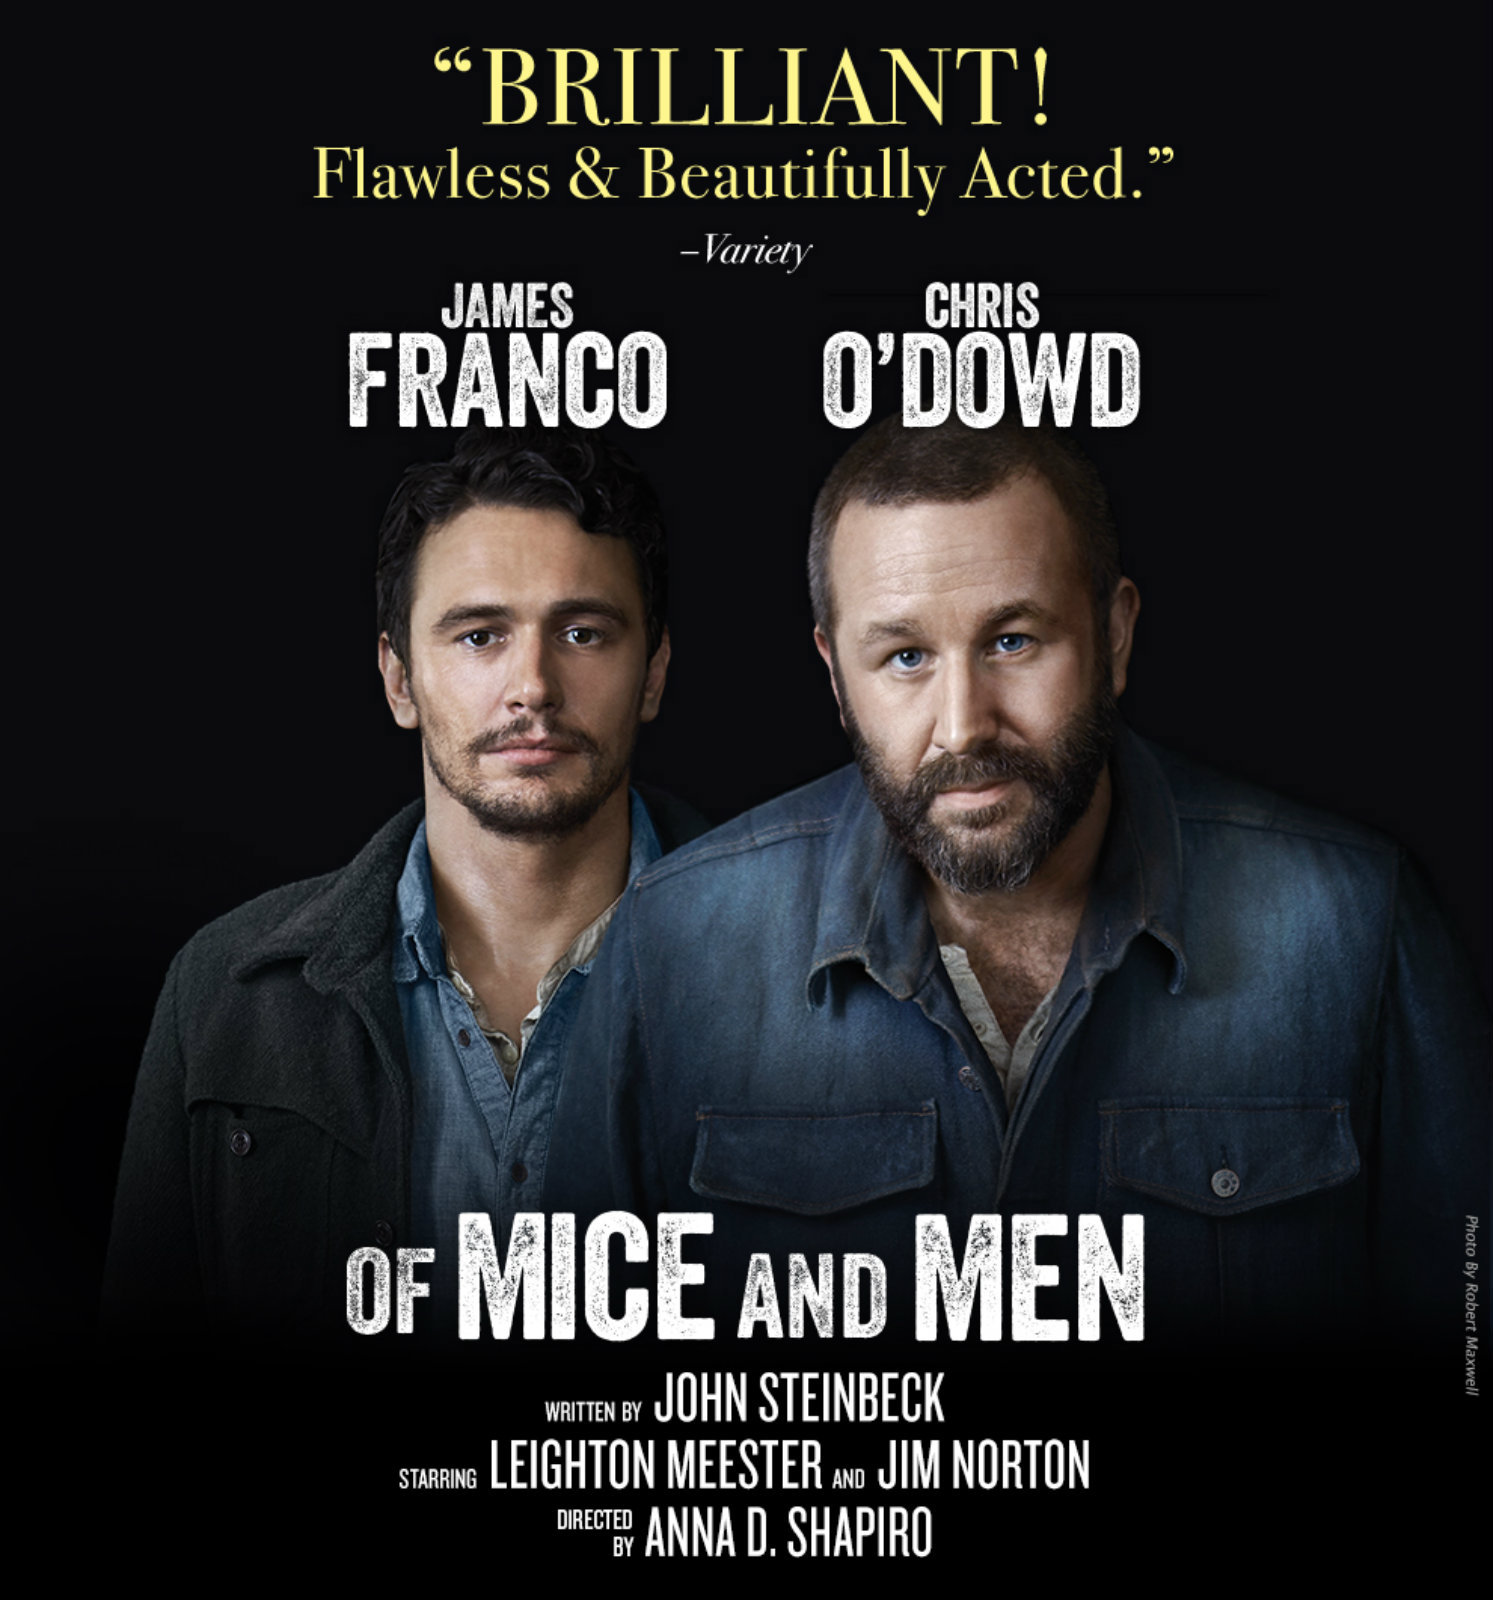 A film critique of the movie of mice and men